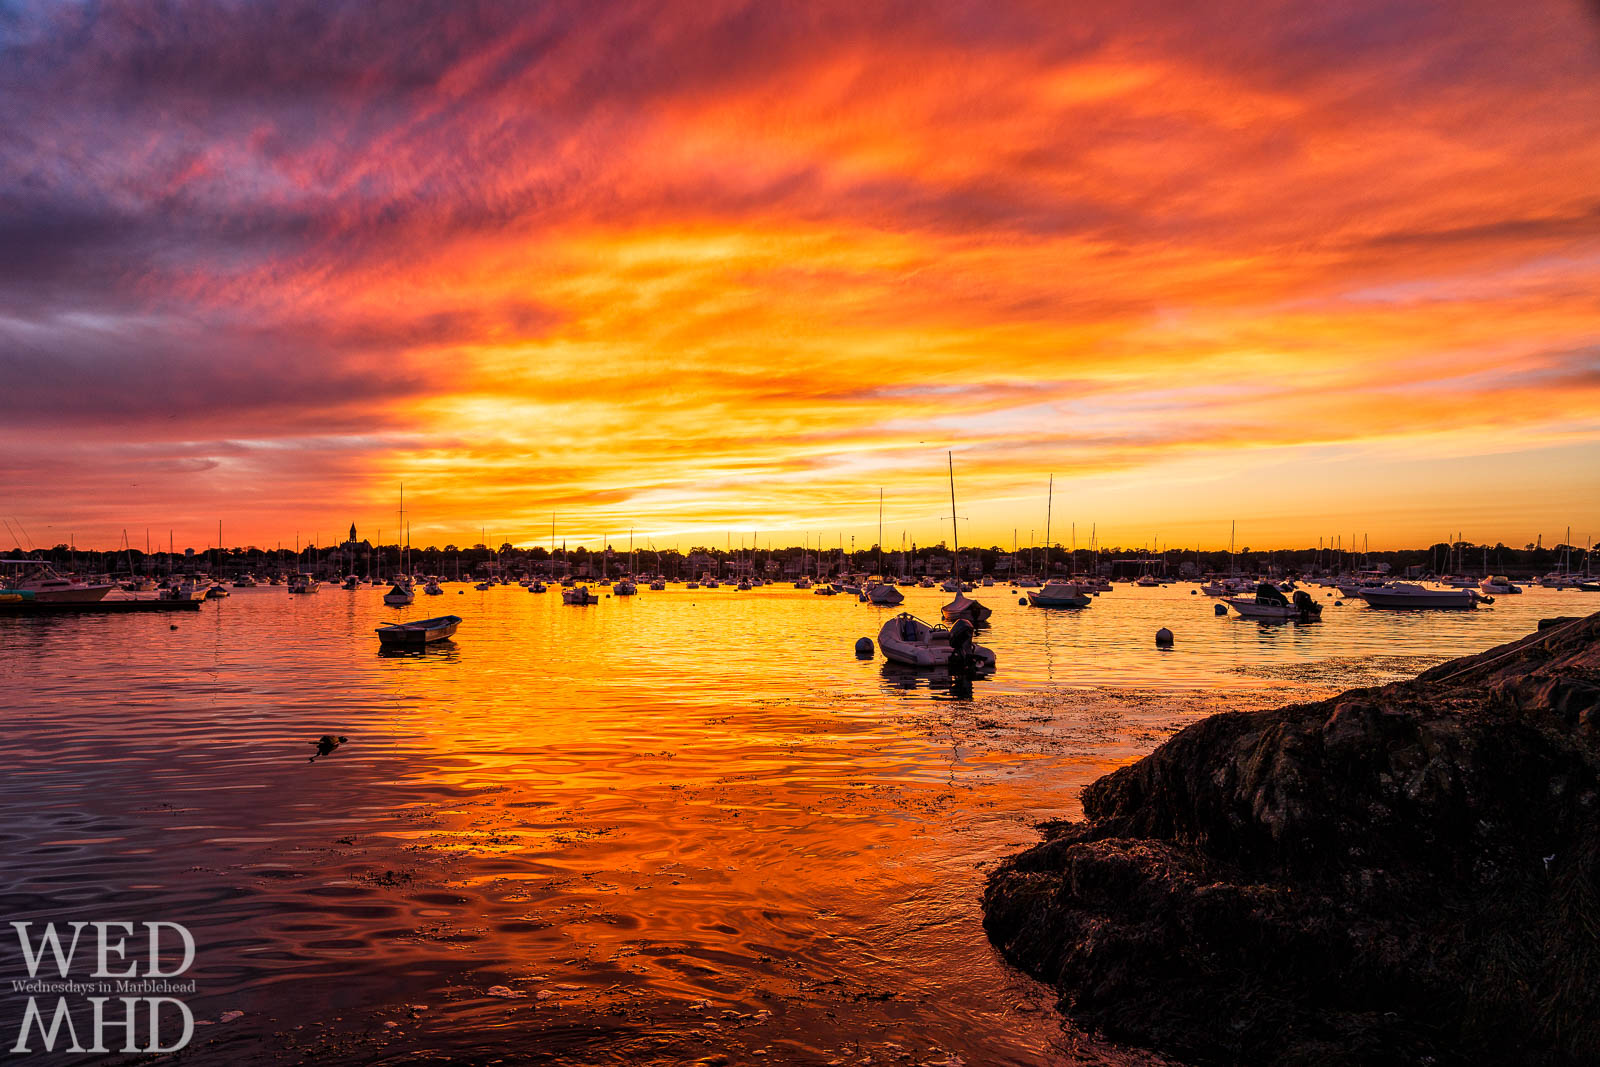 Sunset erupts in an explosion of light over Marblehead Harbor and paints the water in an orange glow